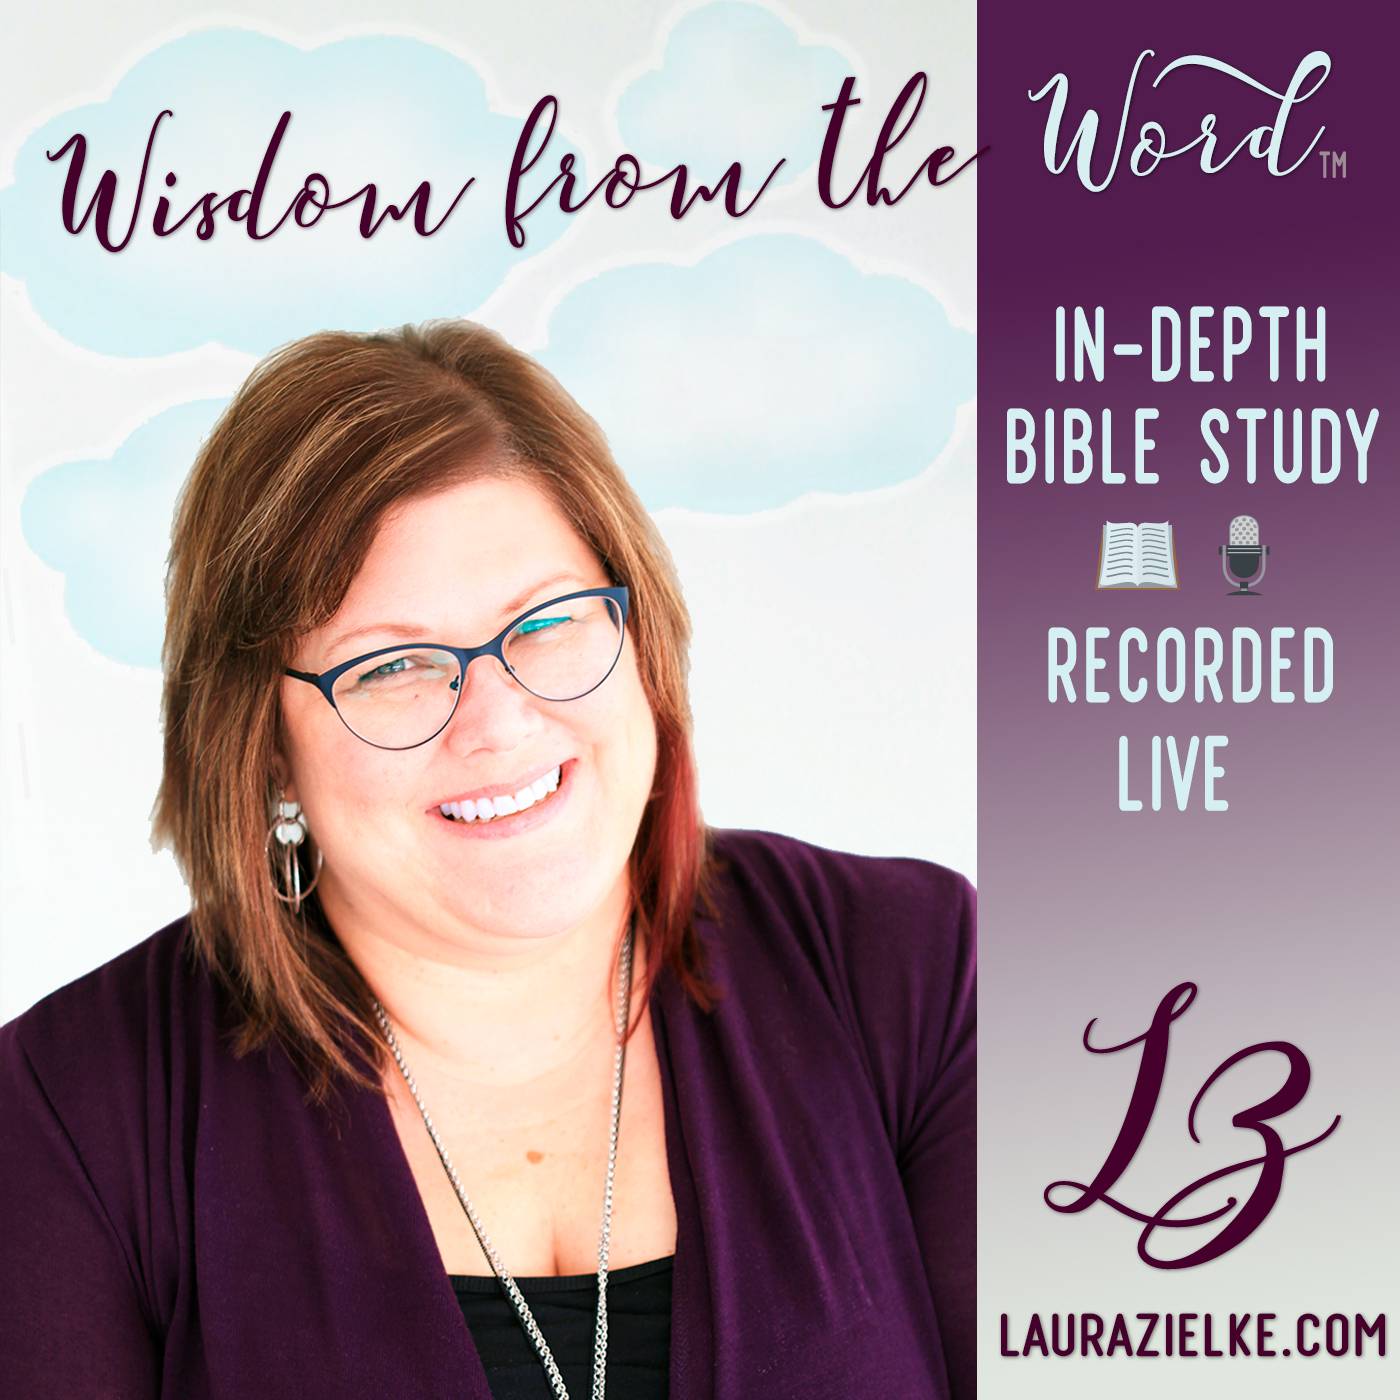 Wisdom from the Word with Laura Zielke